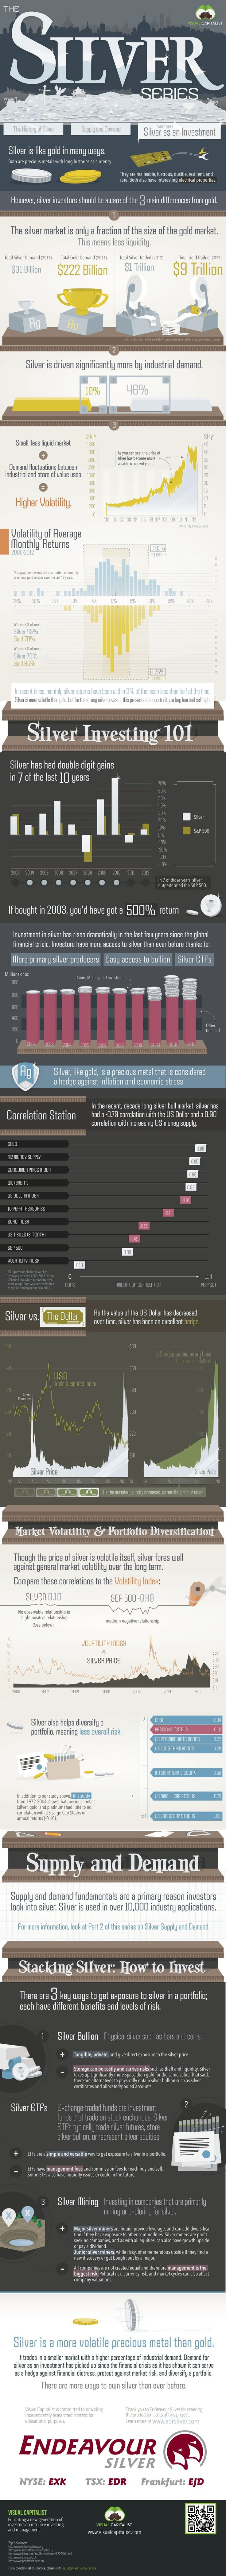 Very educational infographic - Silver as an Investment - The Silver Series Part 3